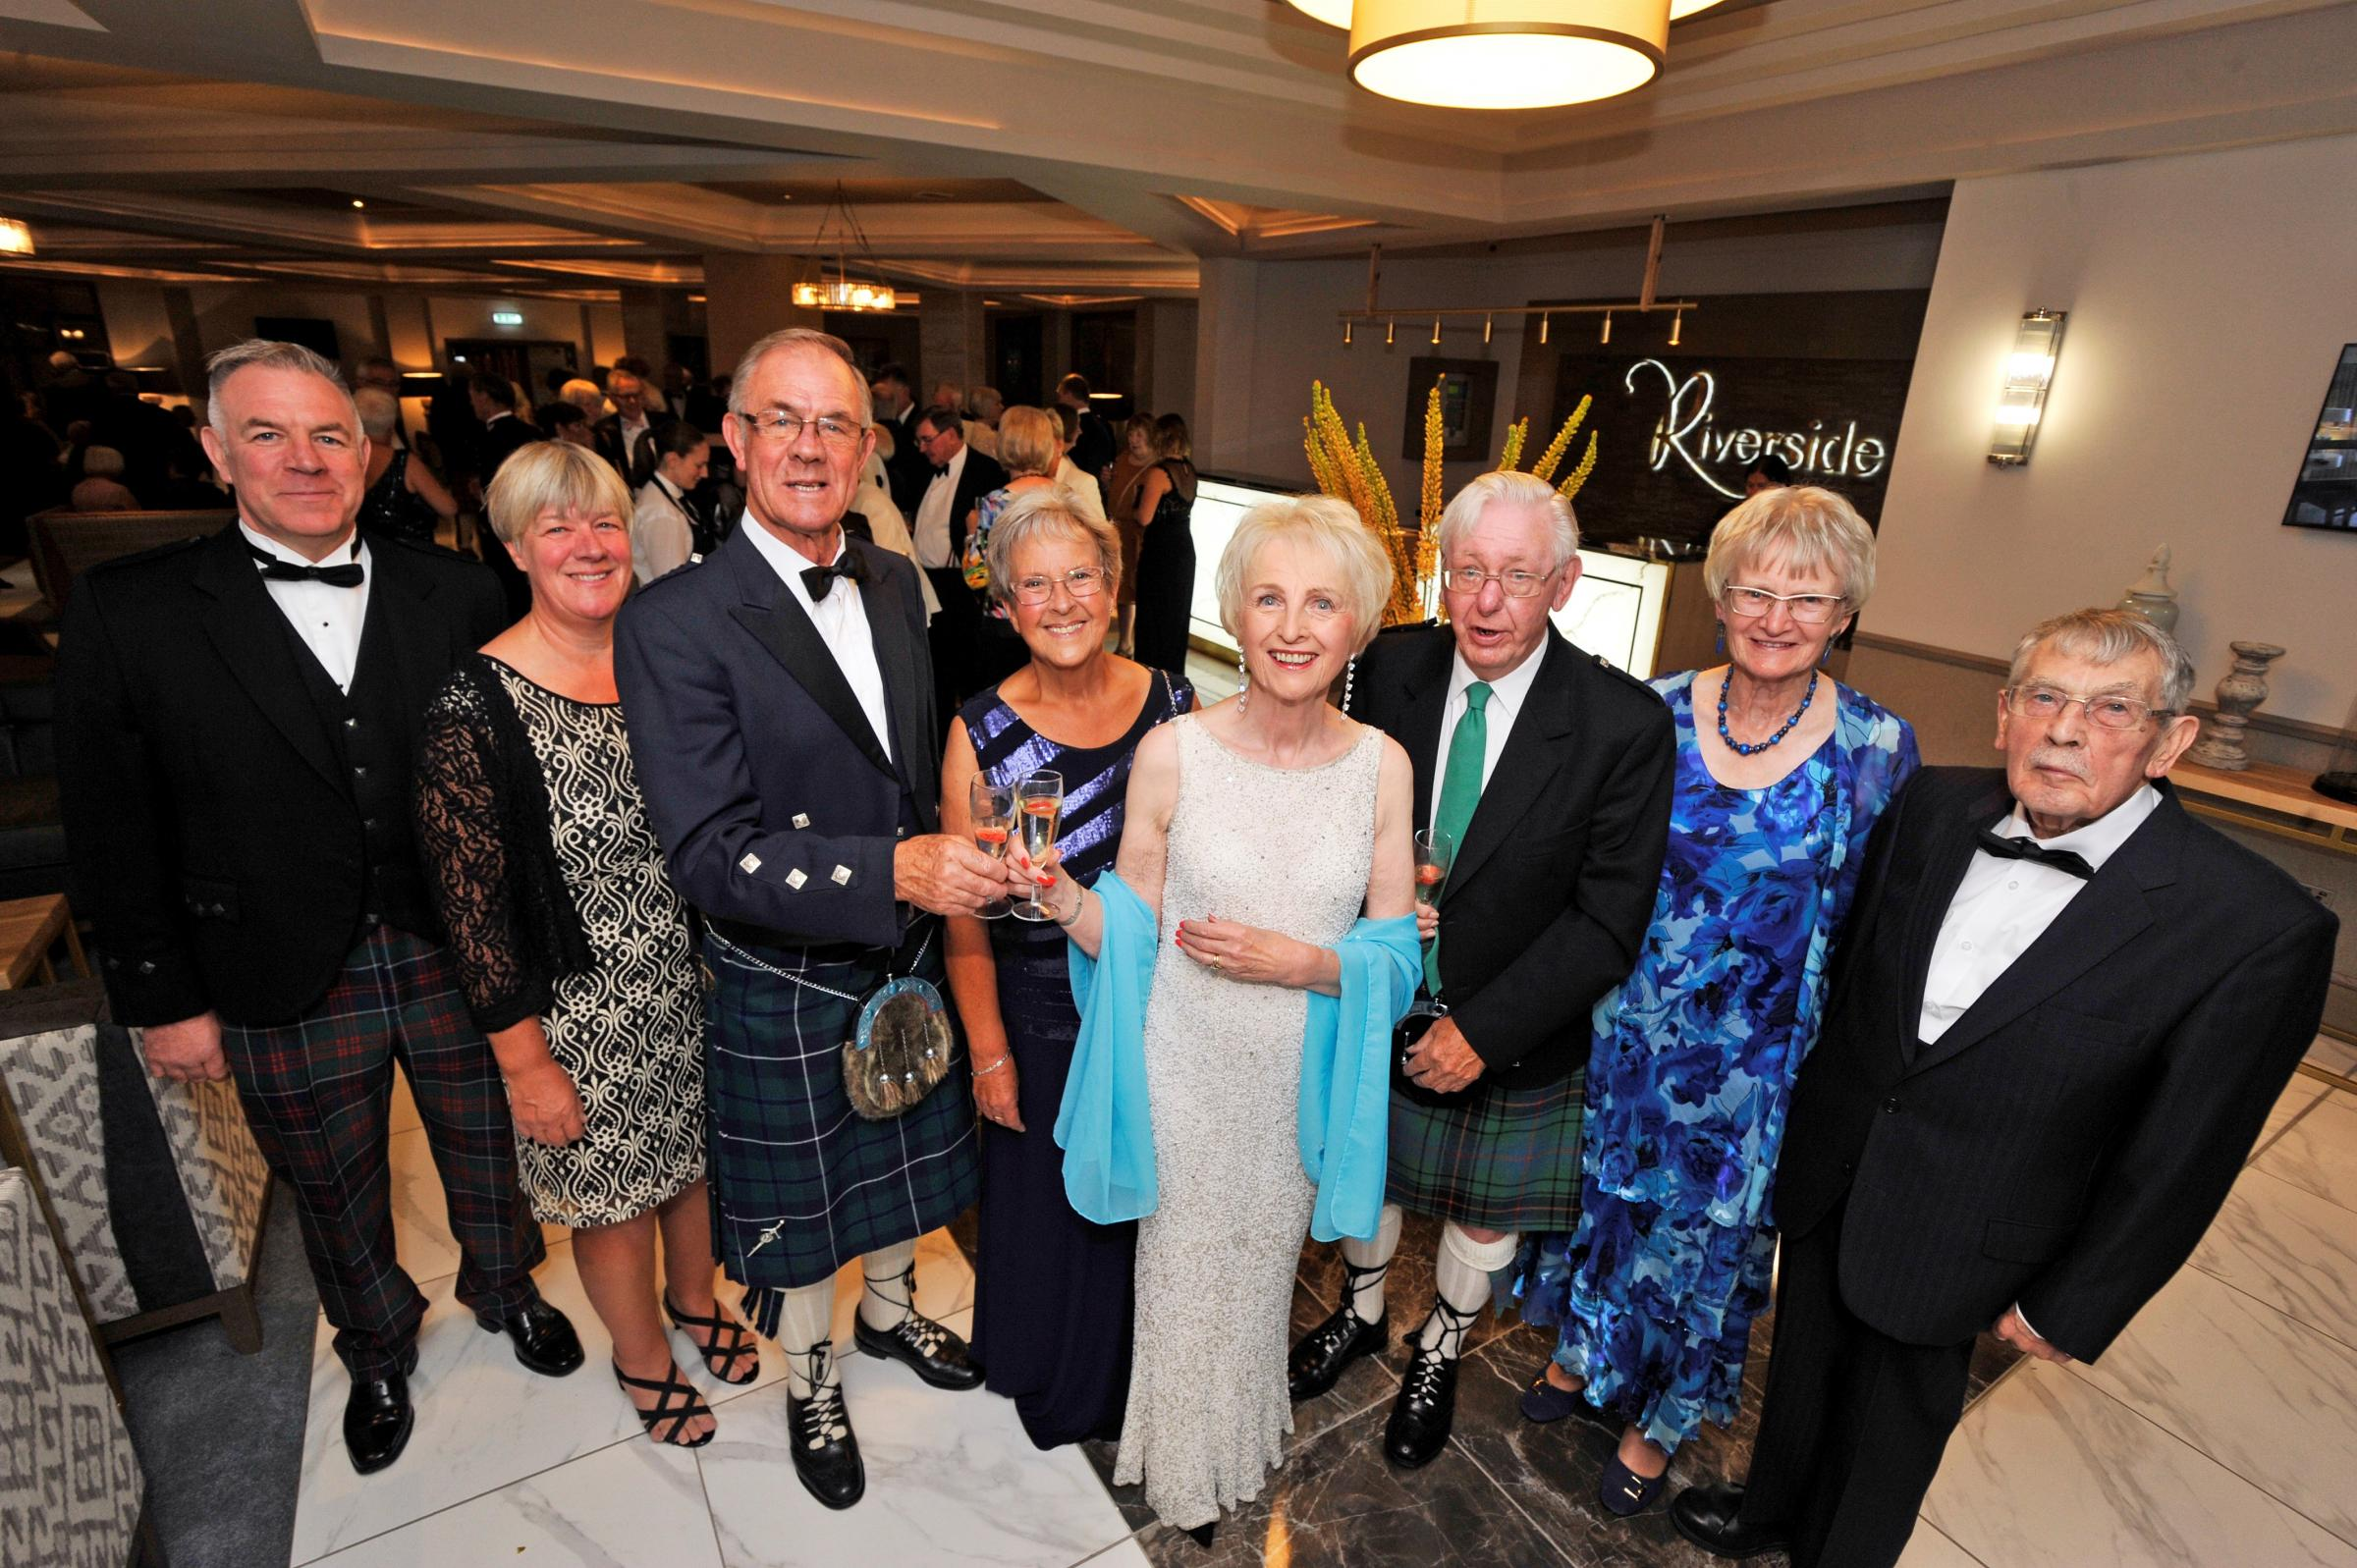 Dreghorn man raises more than £2,000 with 80th birthday fundraiser